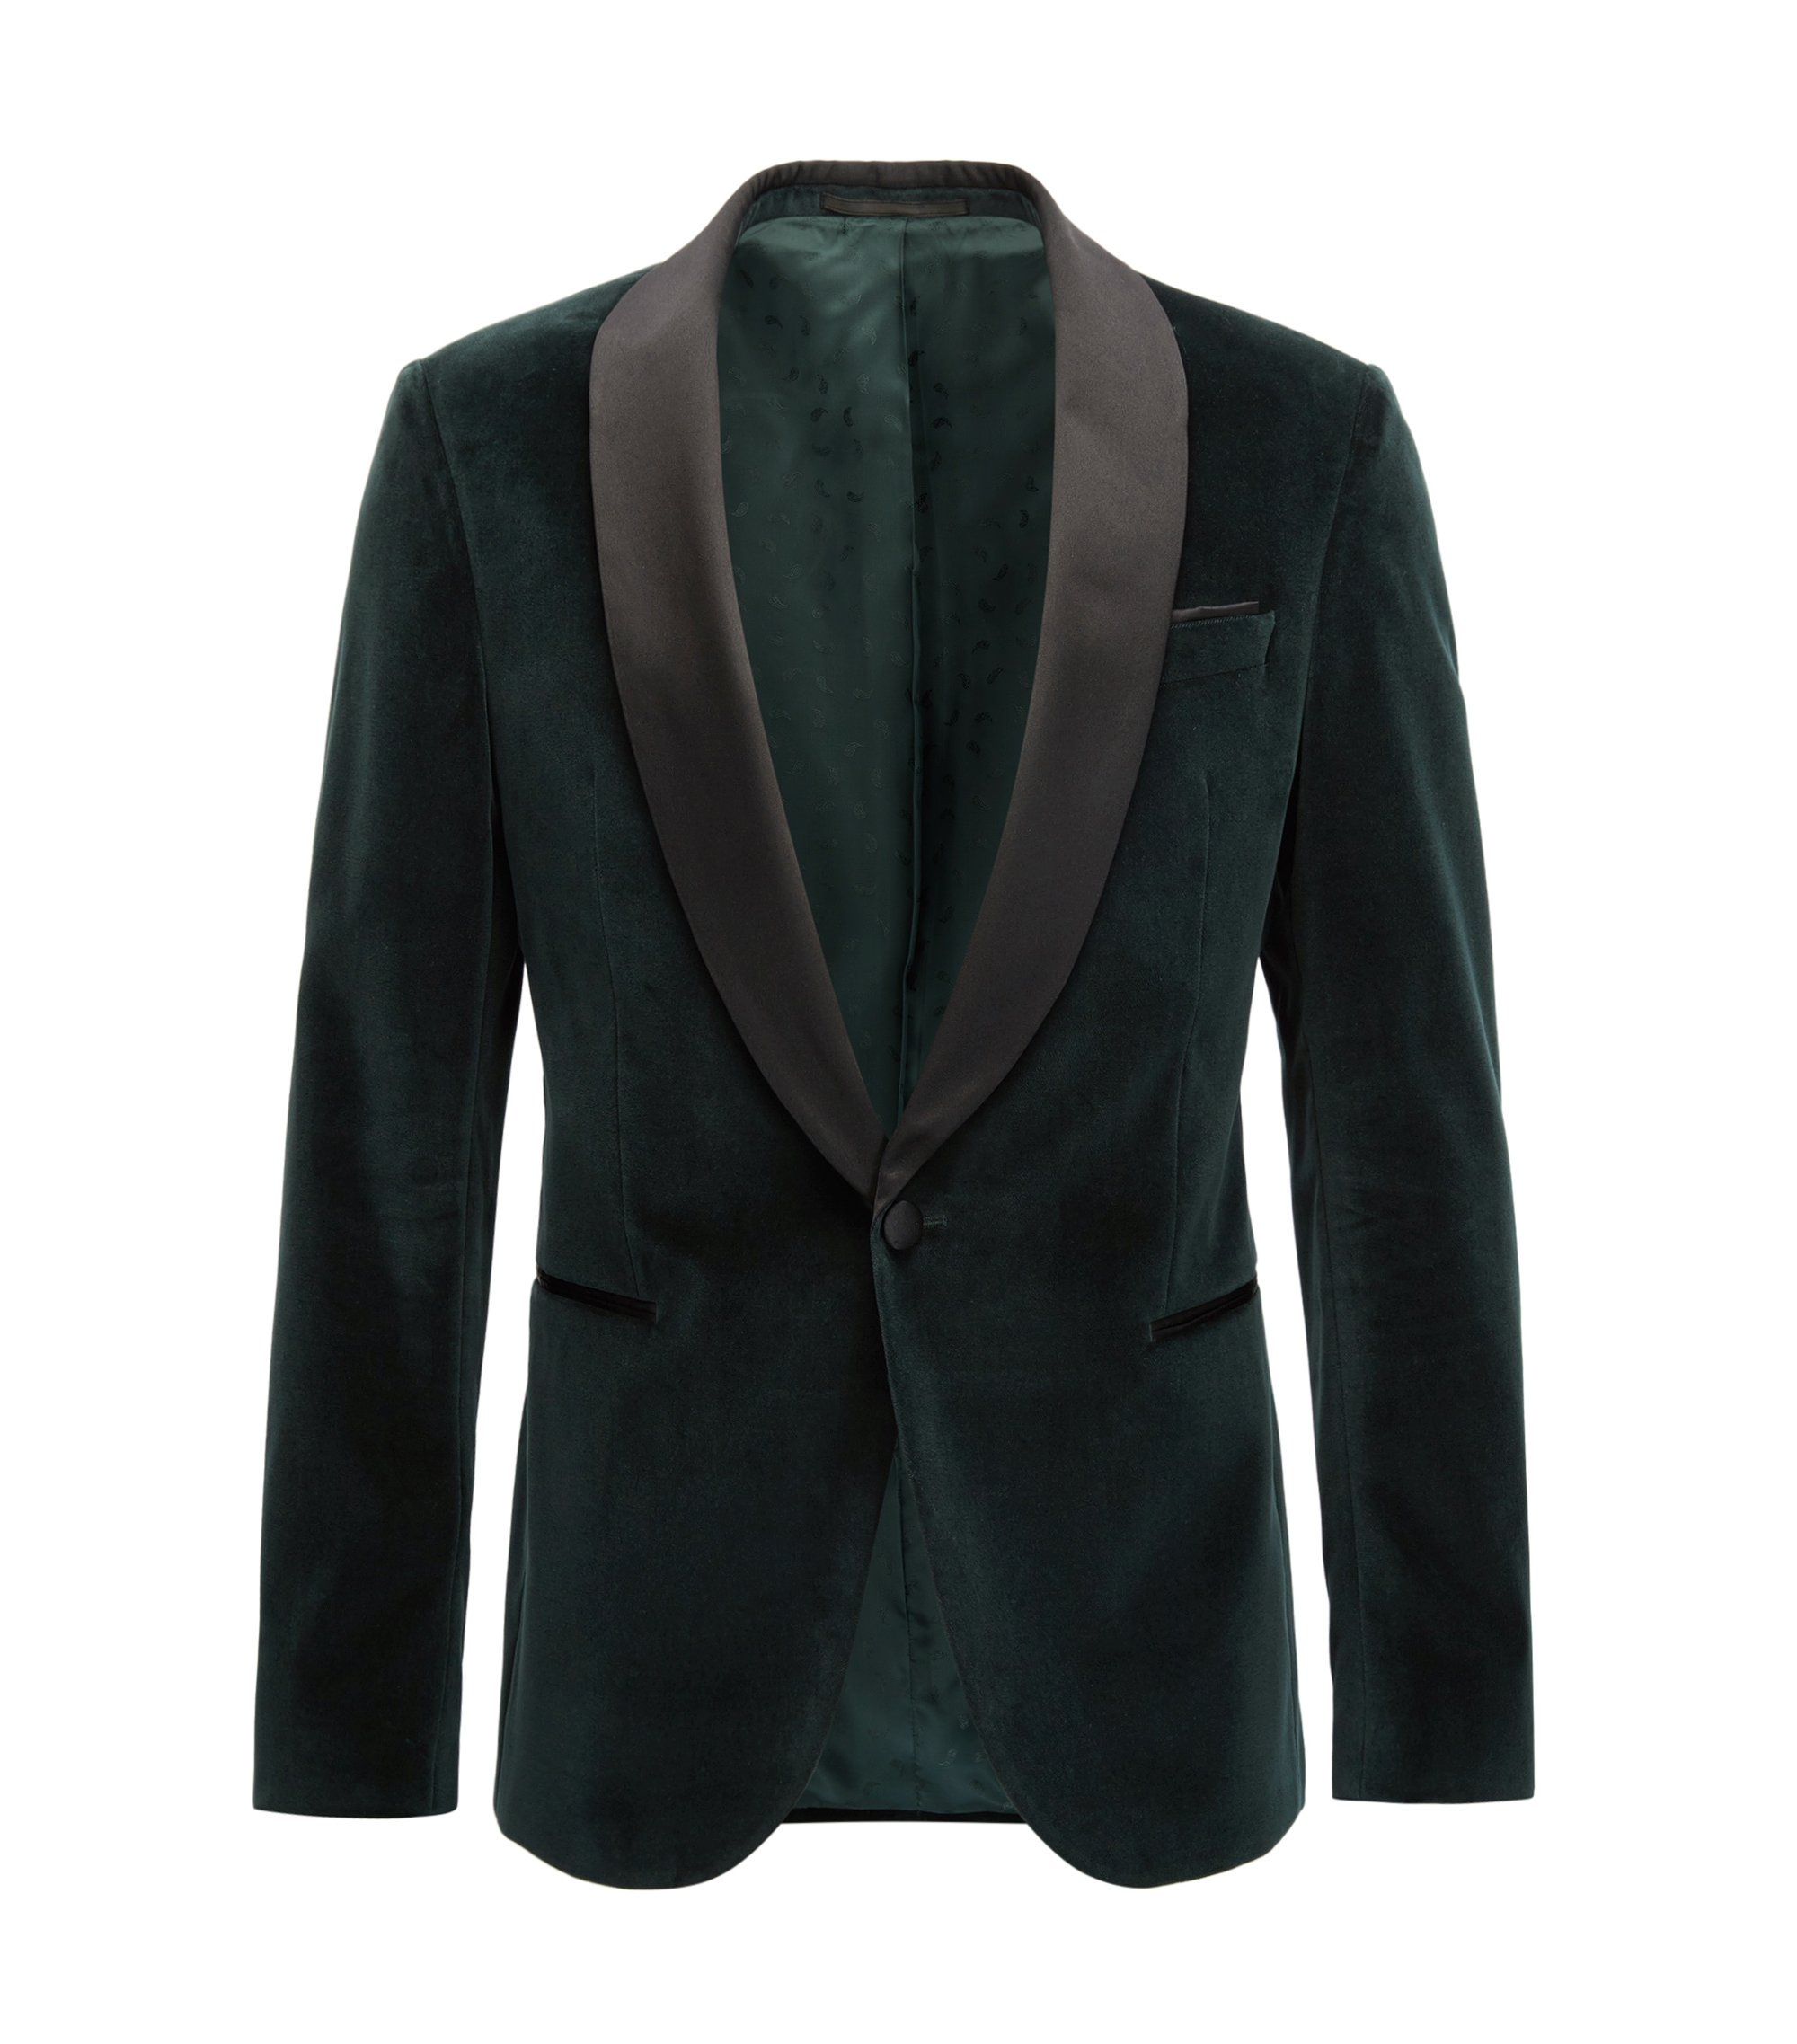 Giacca da smoking slim fit in velluto con revers in seta, Verde scuro